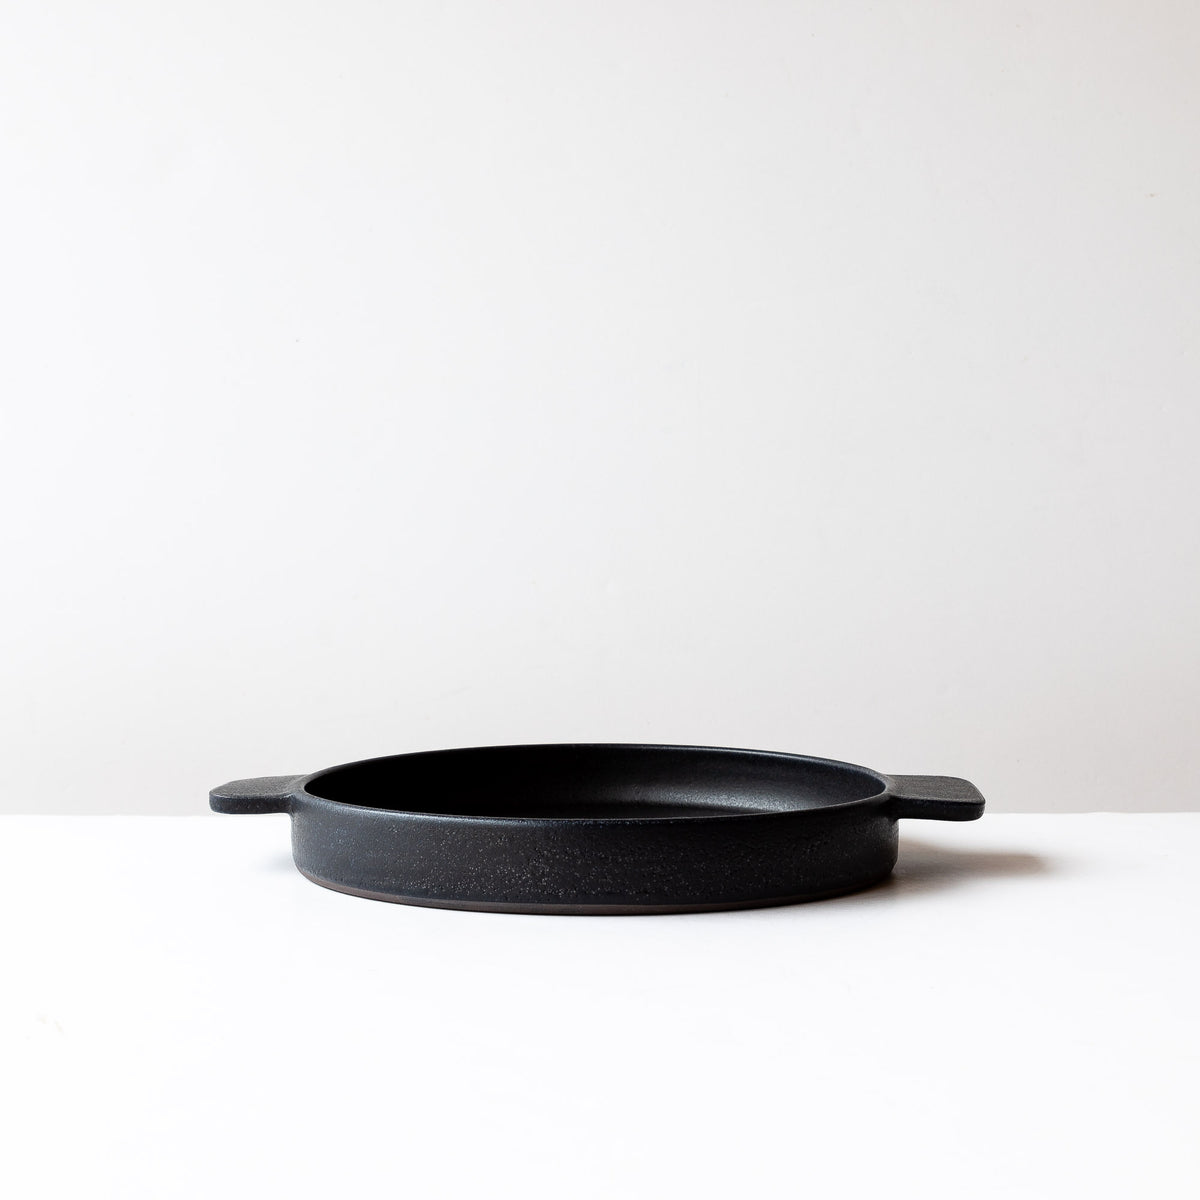 Side View - Black Handmade Round Stoneware Gratin Plate / Serving Plate - 10.5 Inch - Sold by Chic & Basta